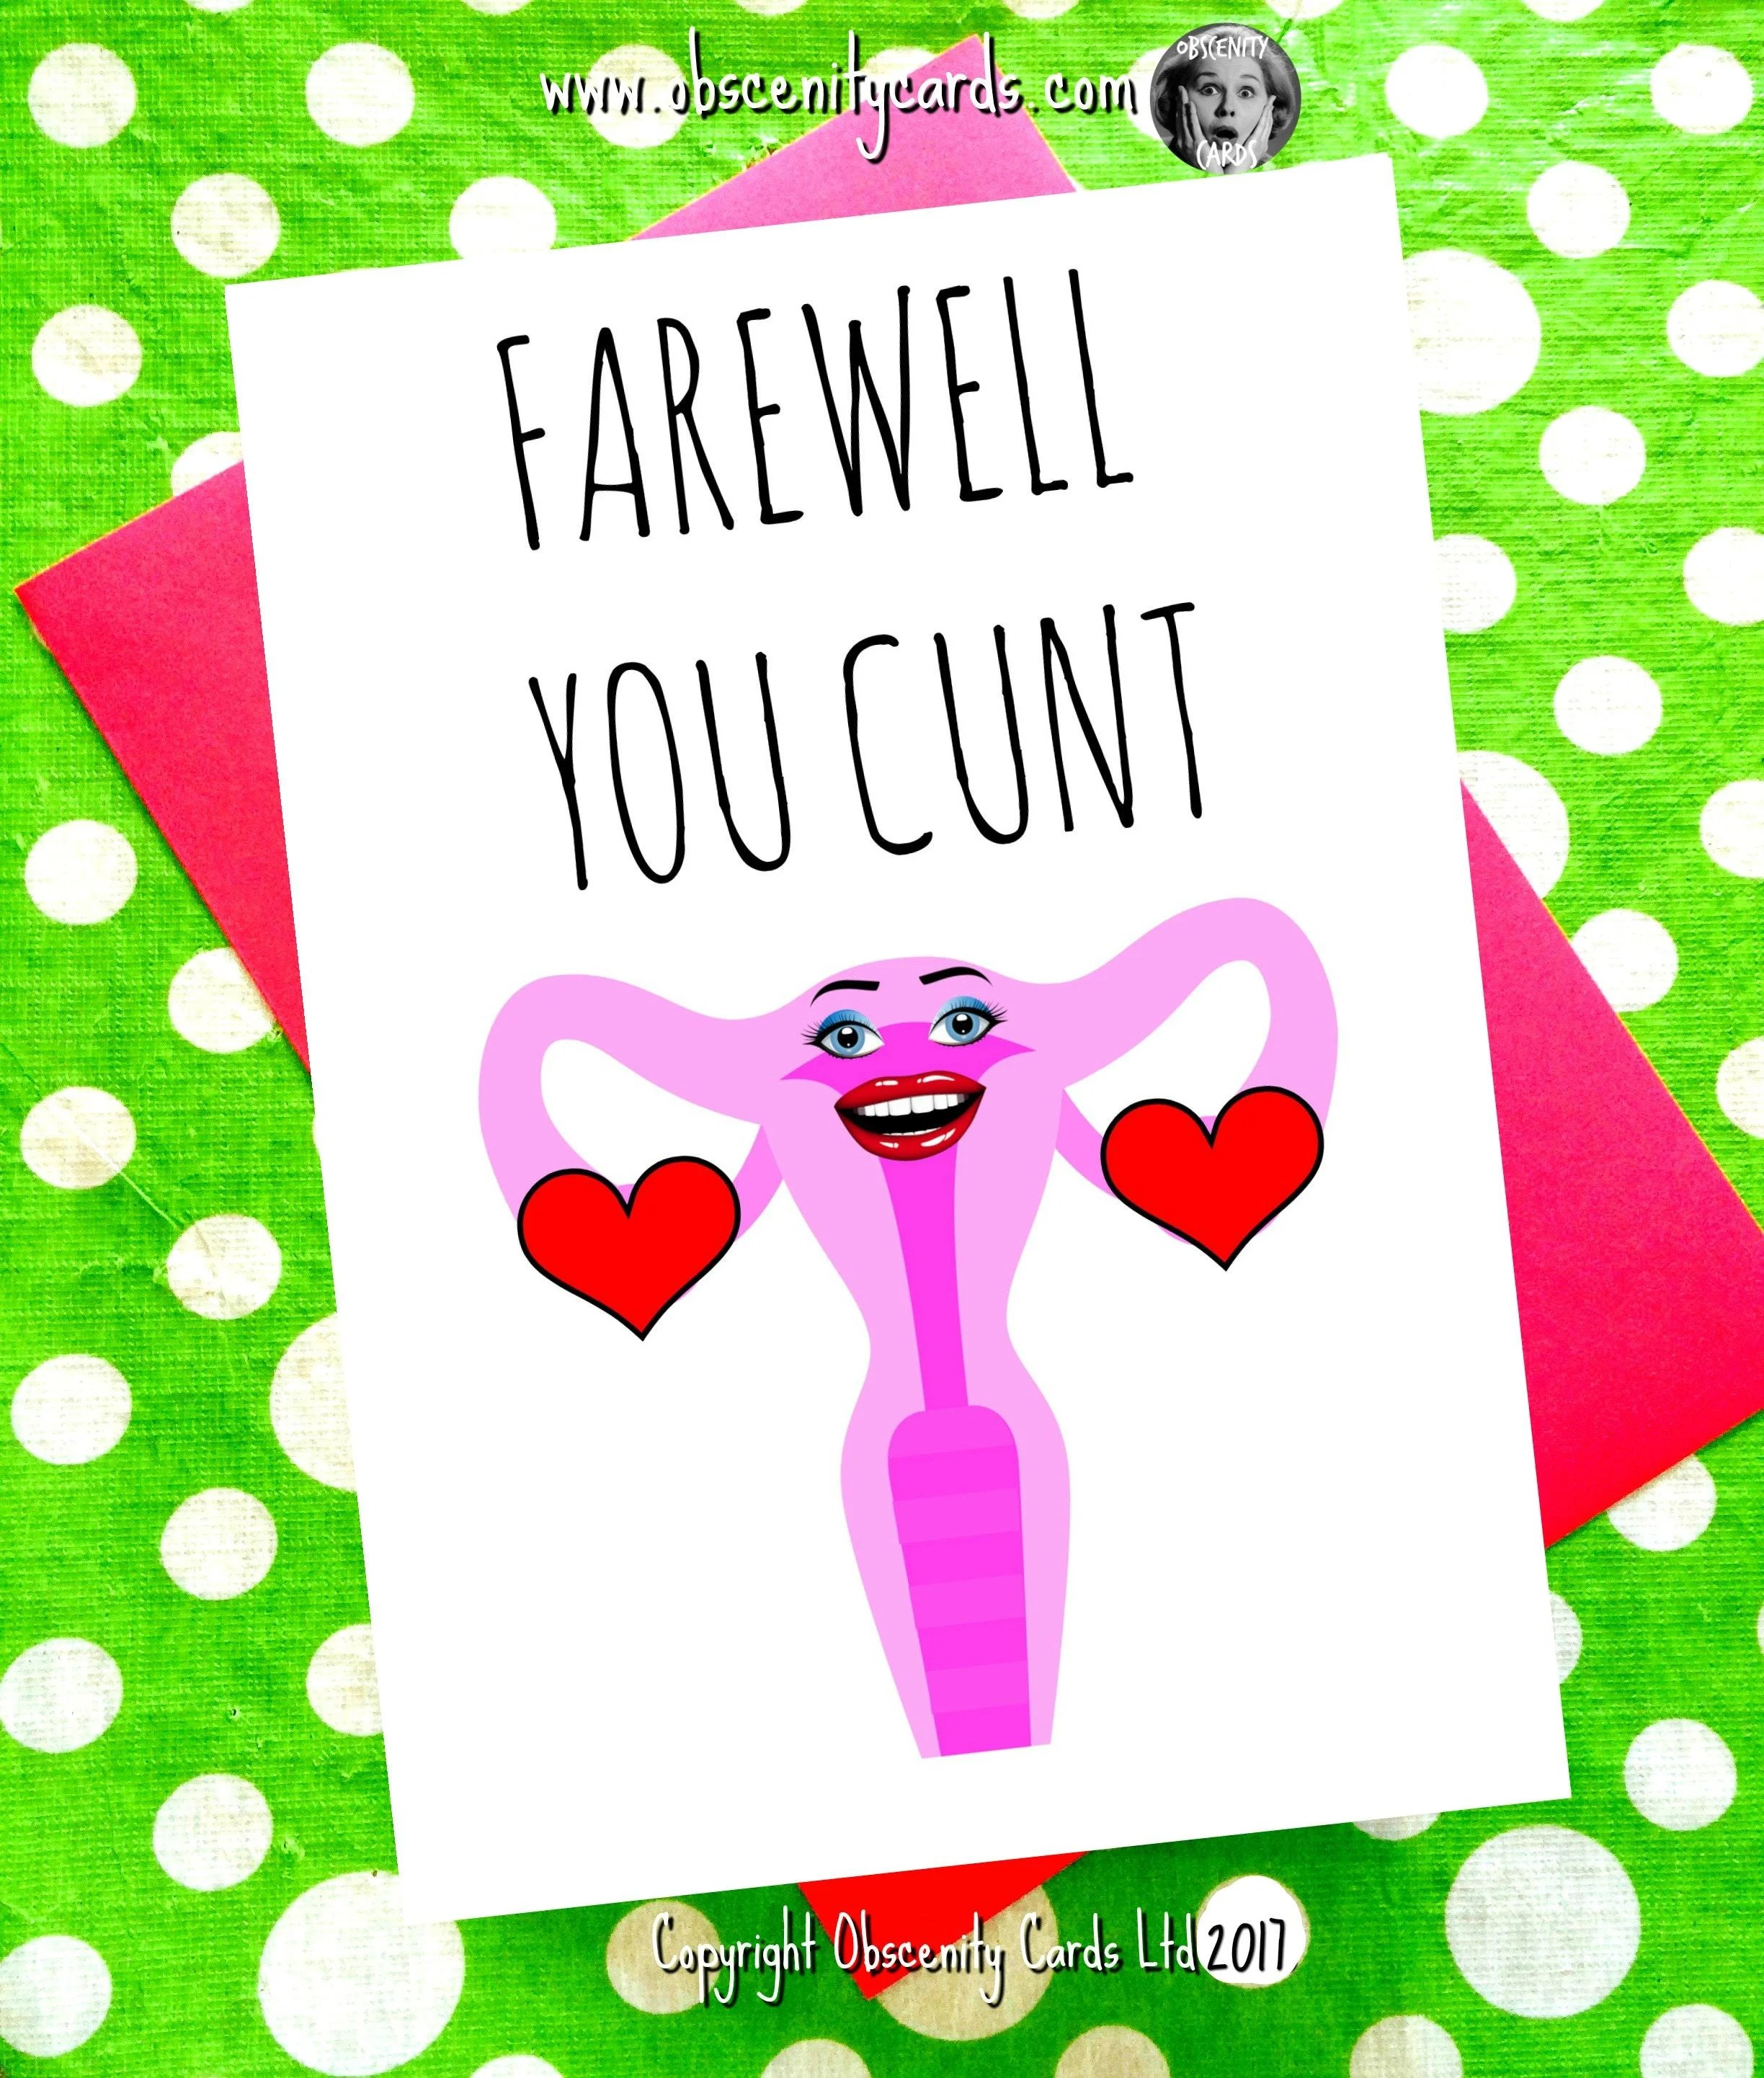 HYSTERECTOMY CARD FAREWELL YOU CUNT